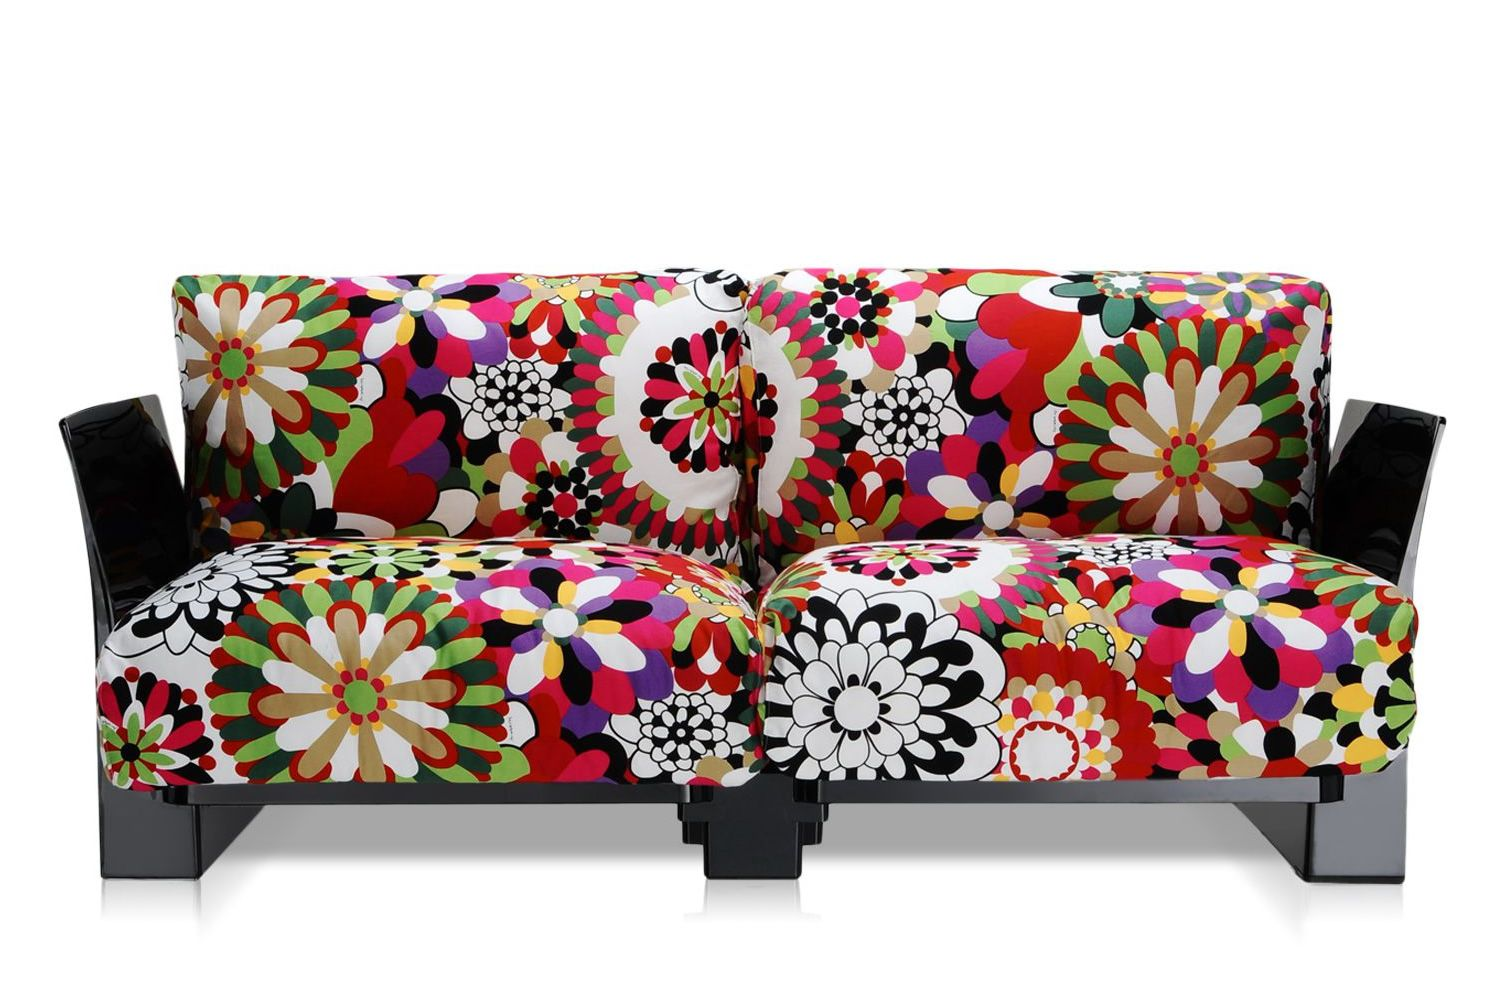 pop missoni sofa designer sofa kartell 2 oder 3 sitzpl tze mit gestell aus polycarbonat. Black Bedroom Furniture Sets. Home Design Ideas